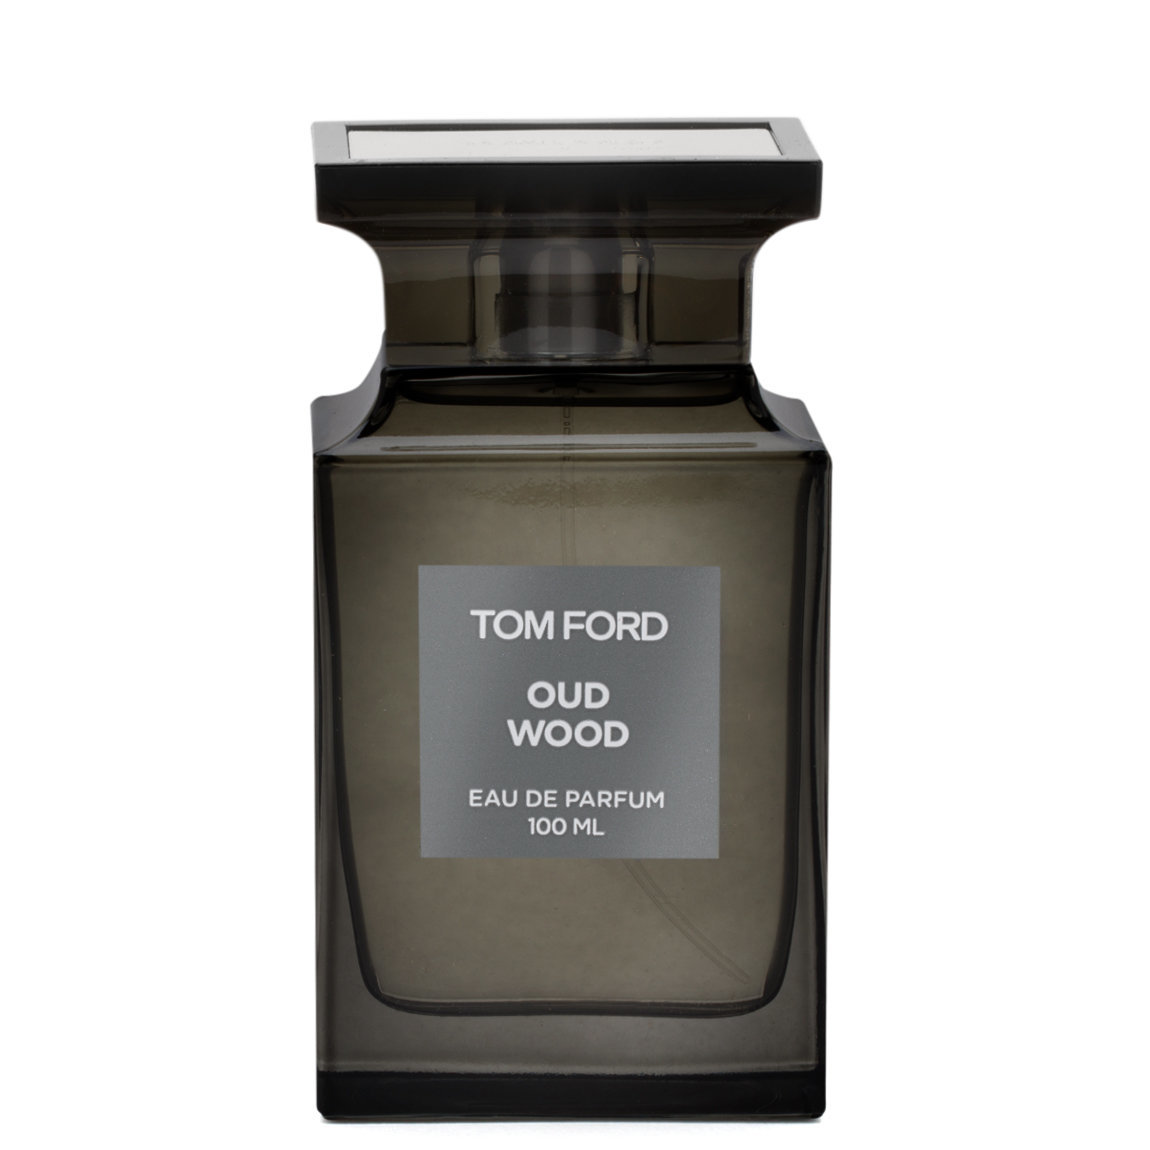 TOM FORD Oud Wood 100 ml product swatch.